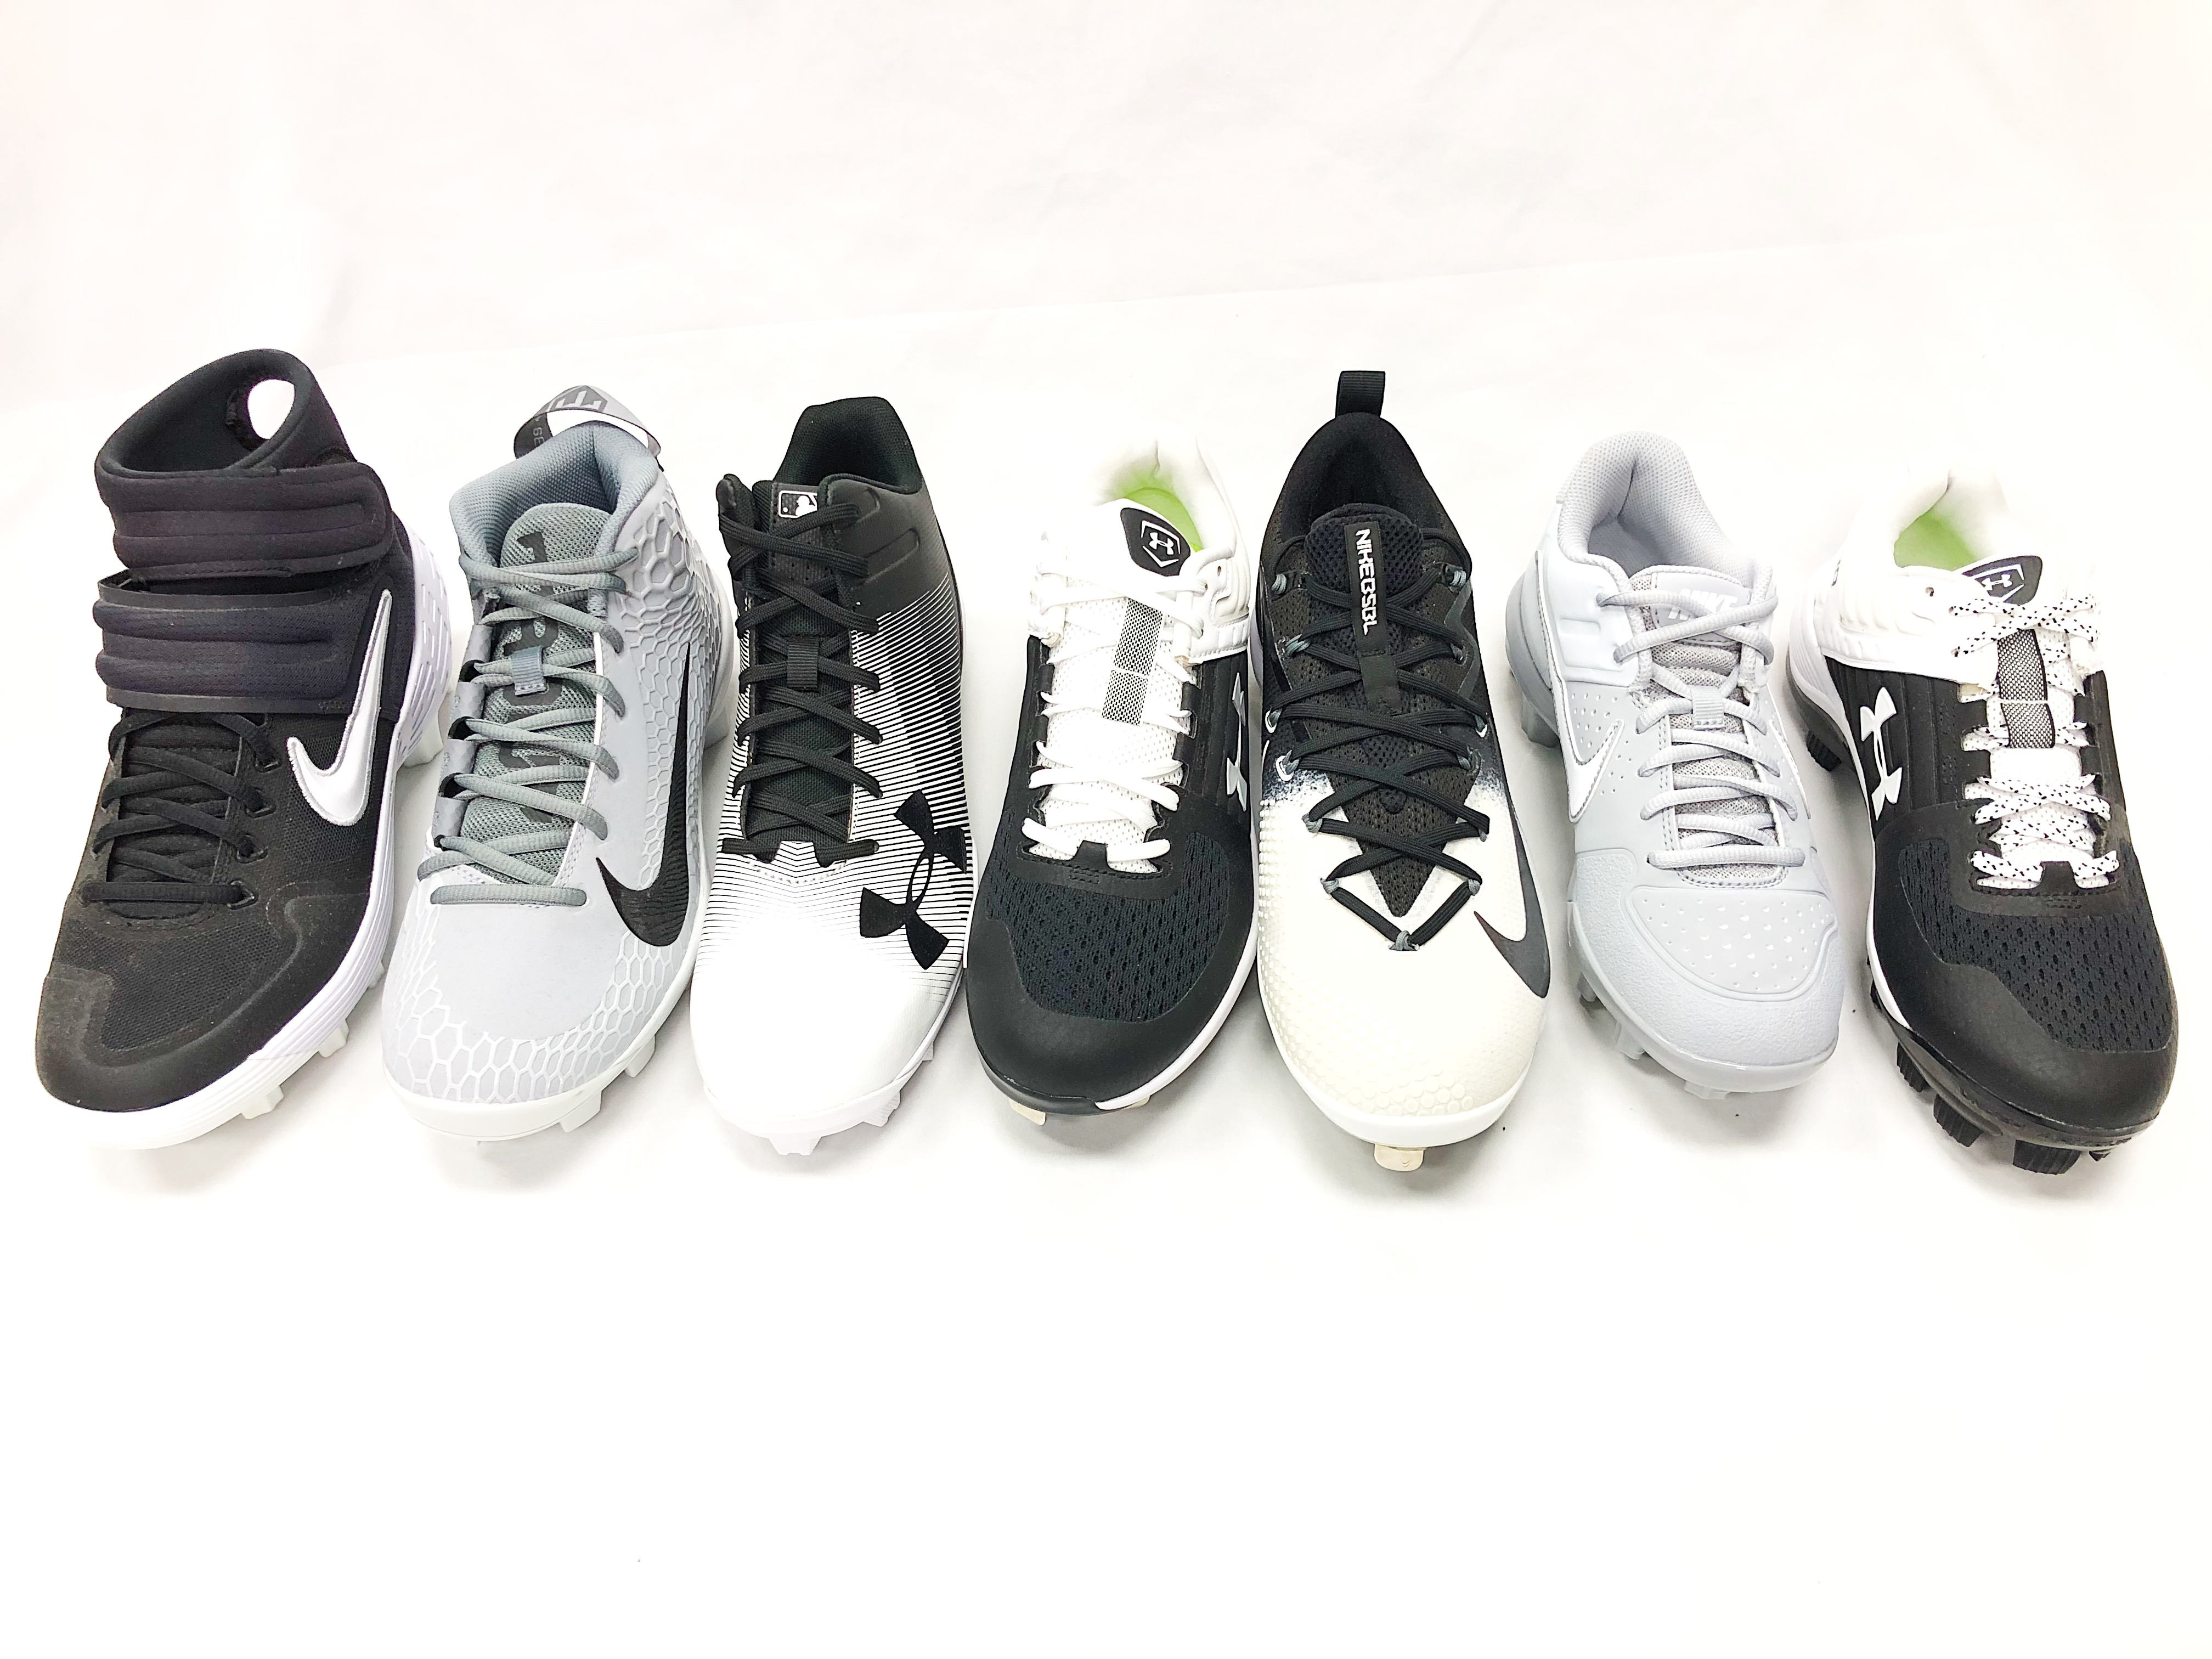 Nike & Under Armour Baseball Cleats